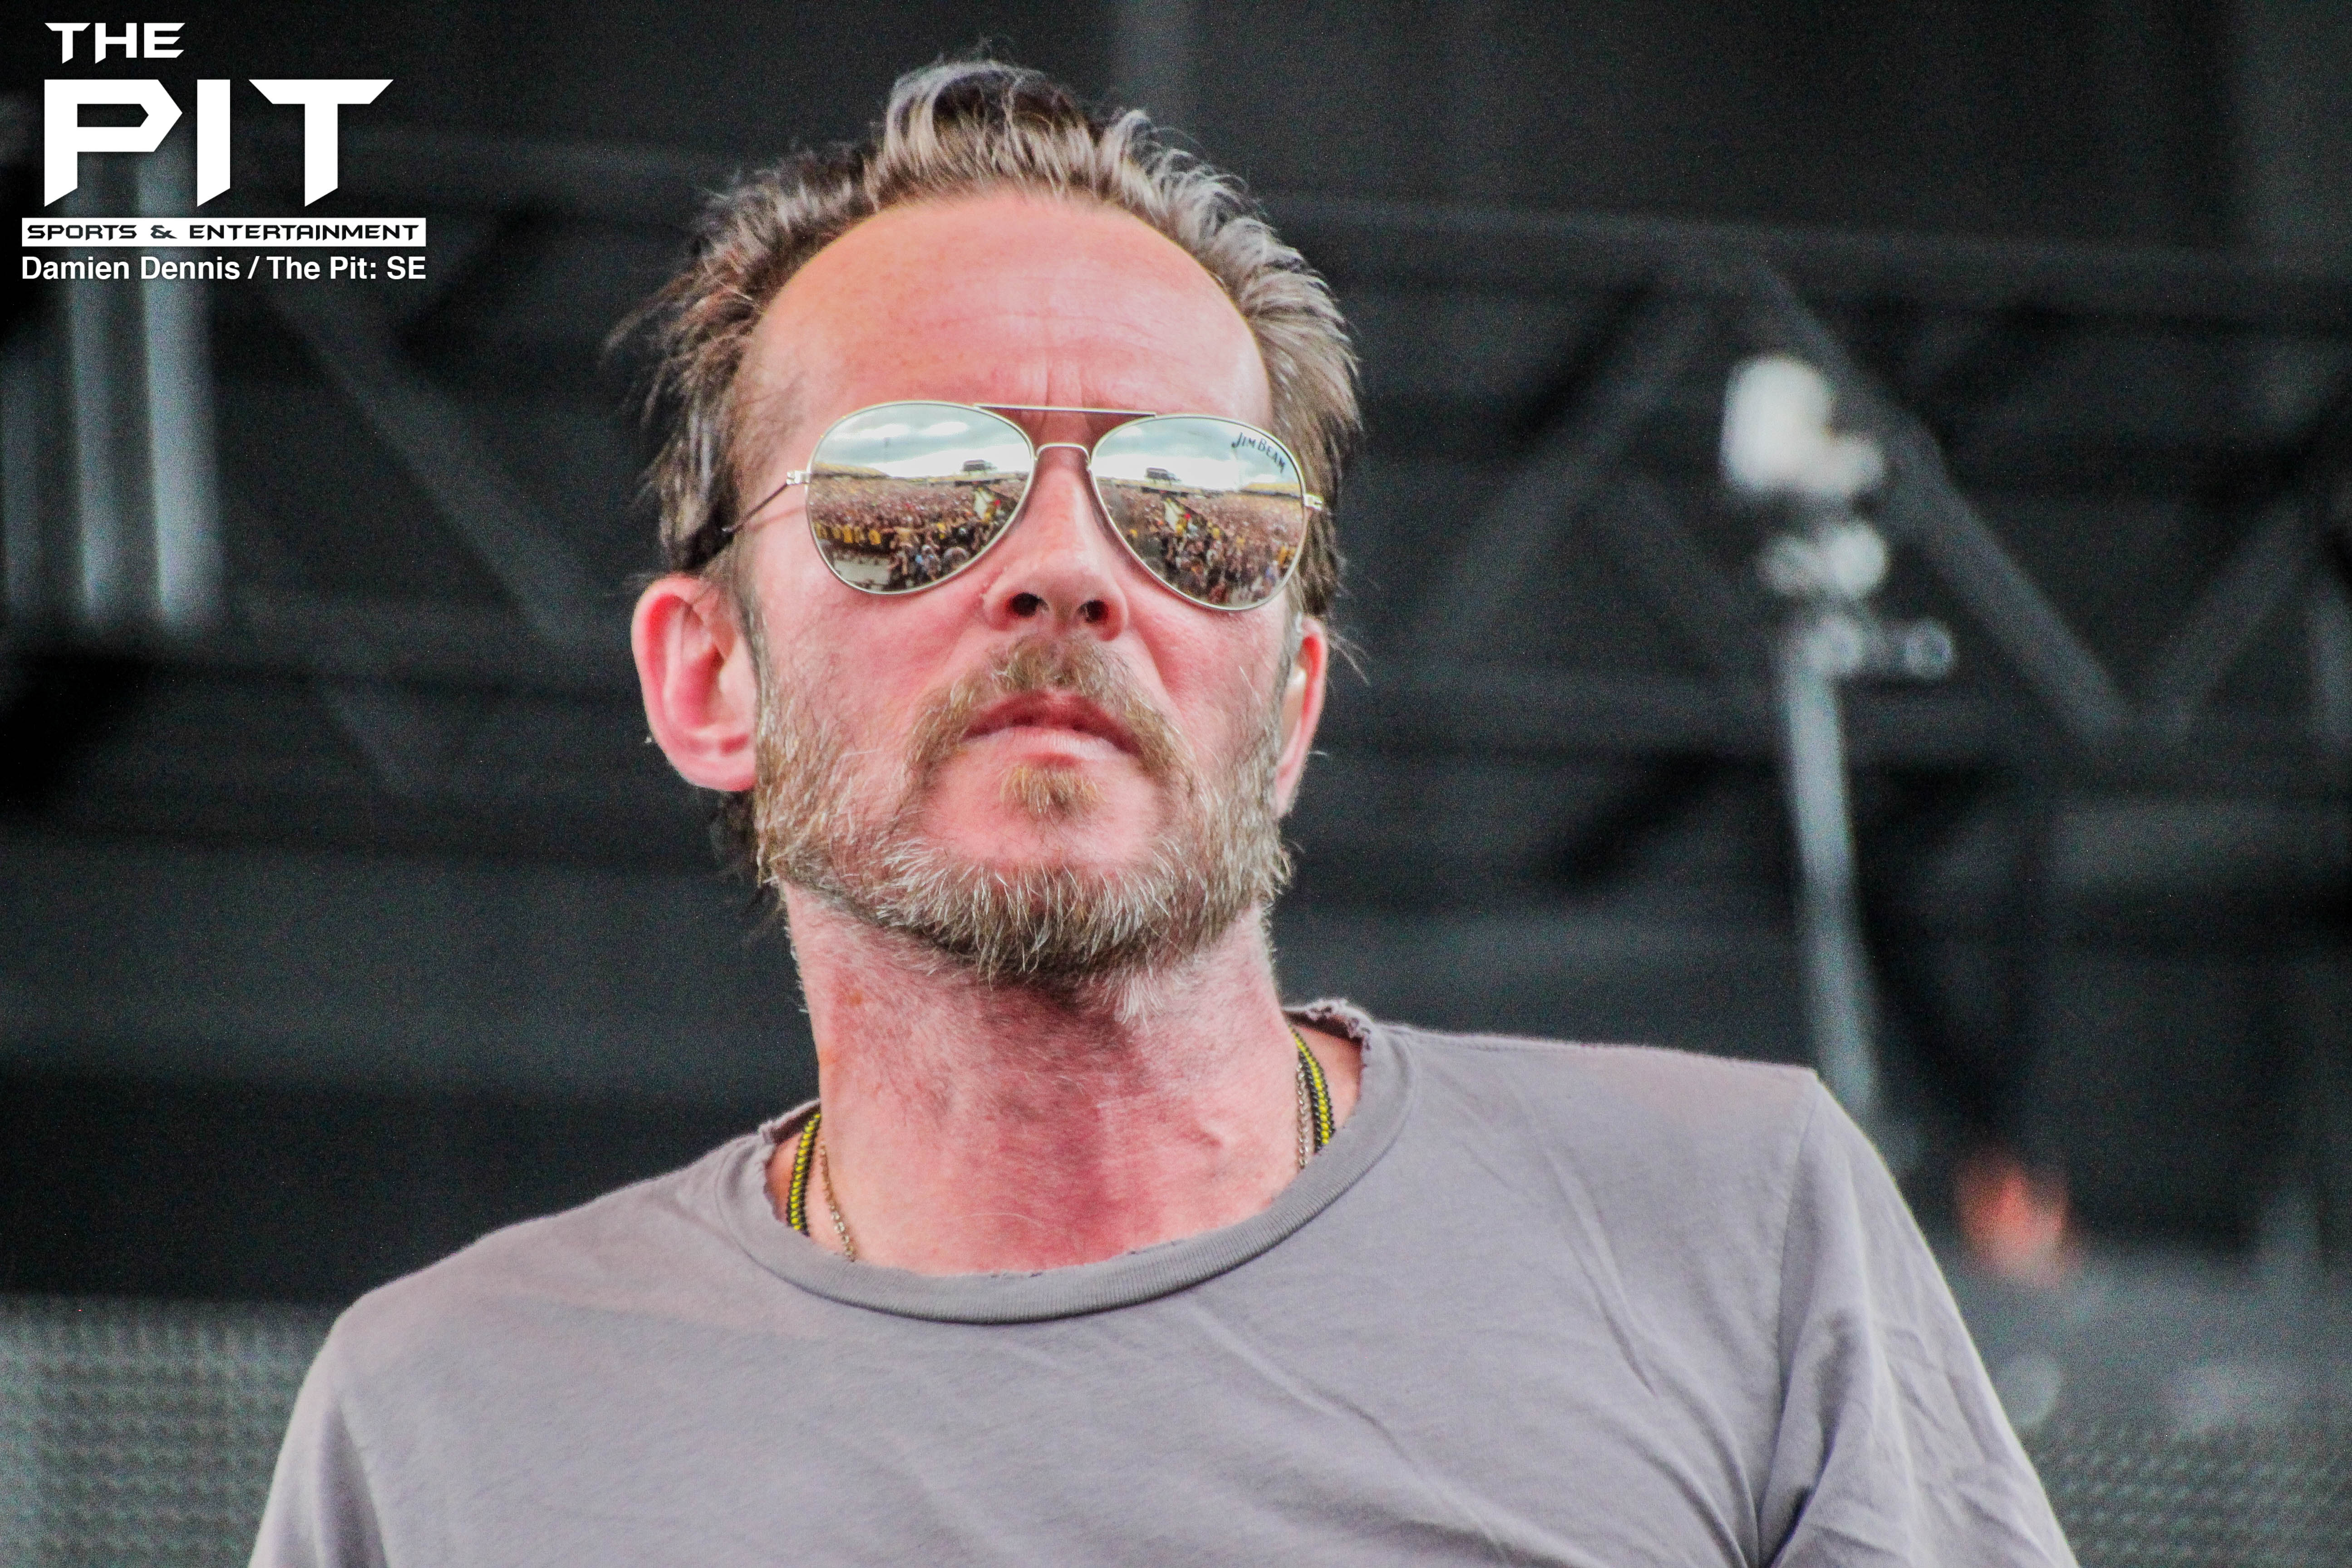 Ex-Stone Temple Pilots frontman Scott Weiland passes away ... Soccer Manager